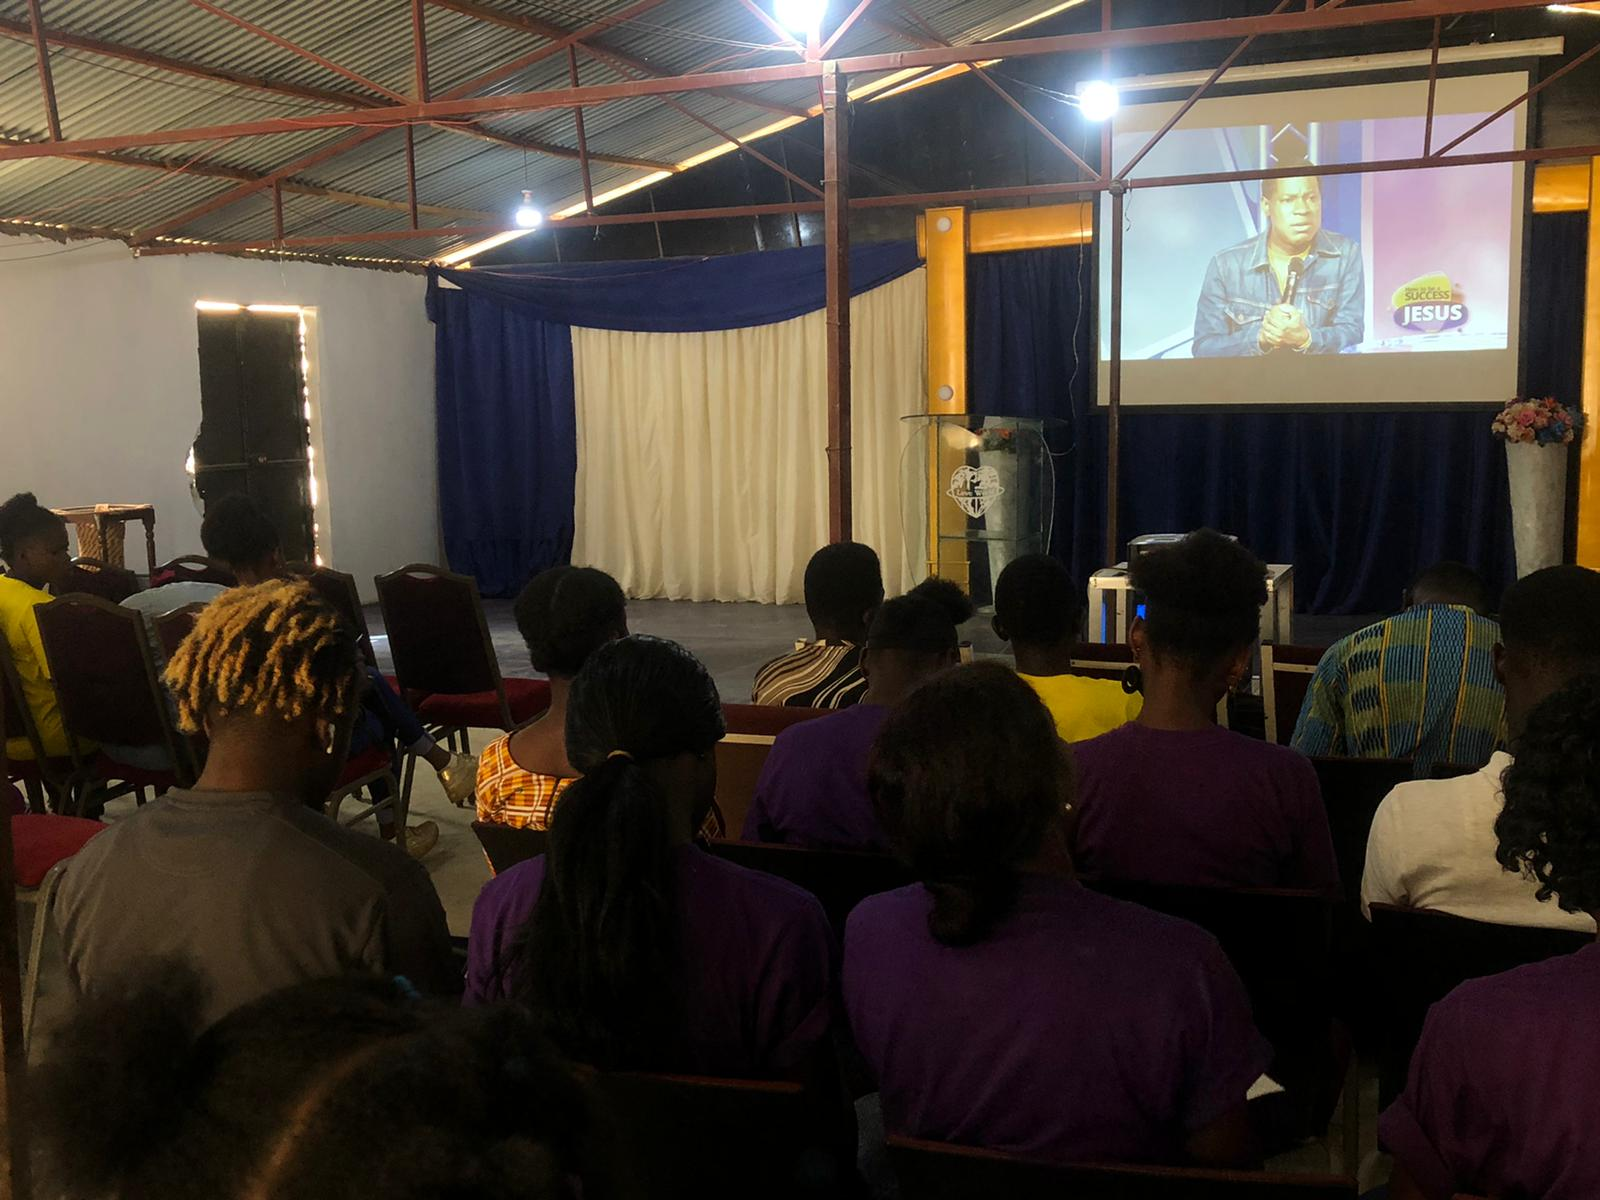 'HOW TO BE A SUCCESS FOR JESUS' OUTREACH IN GAMBIA